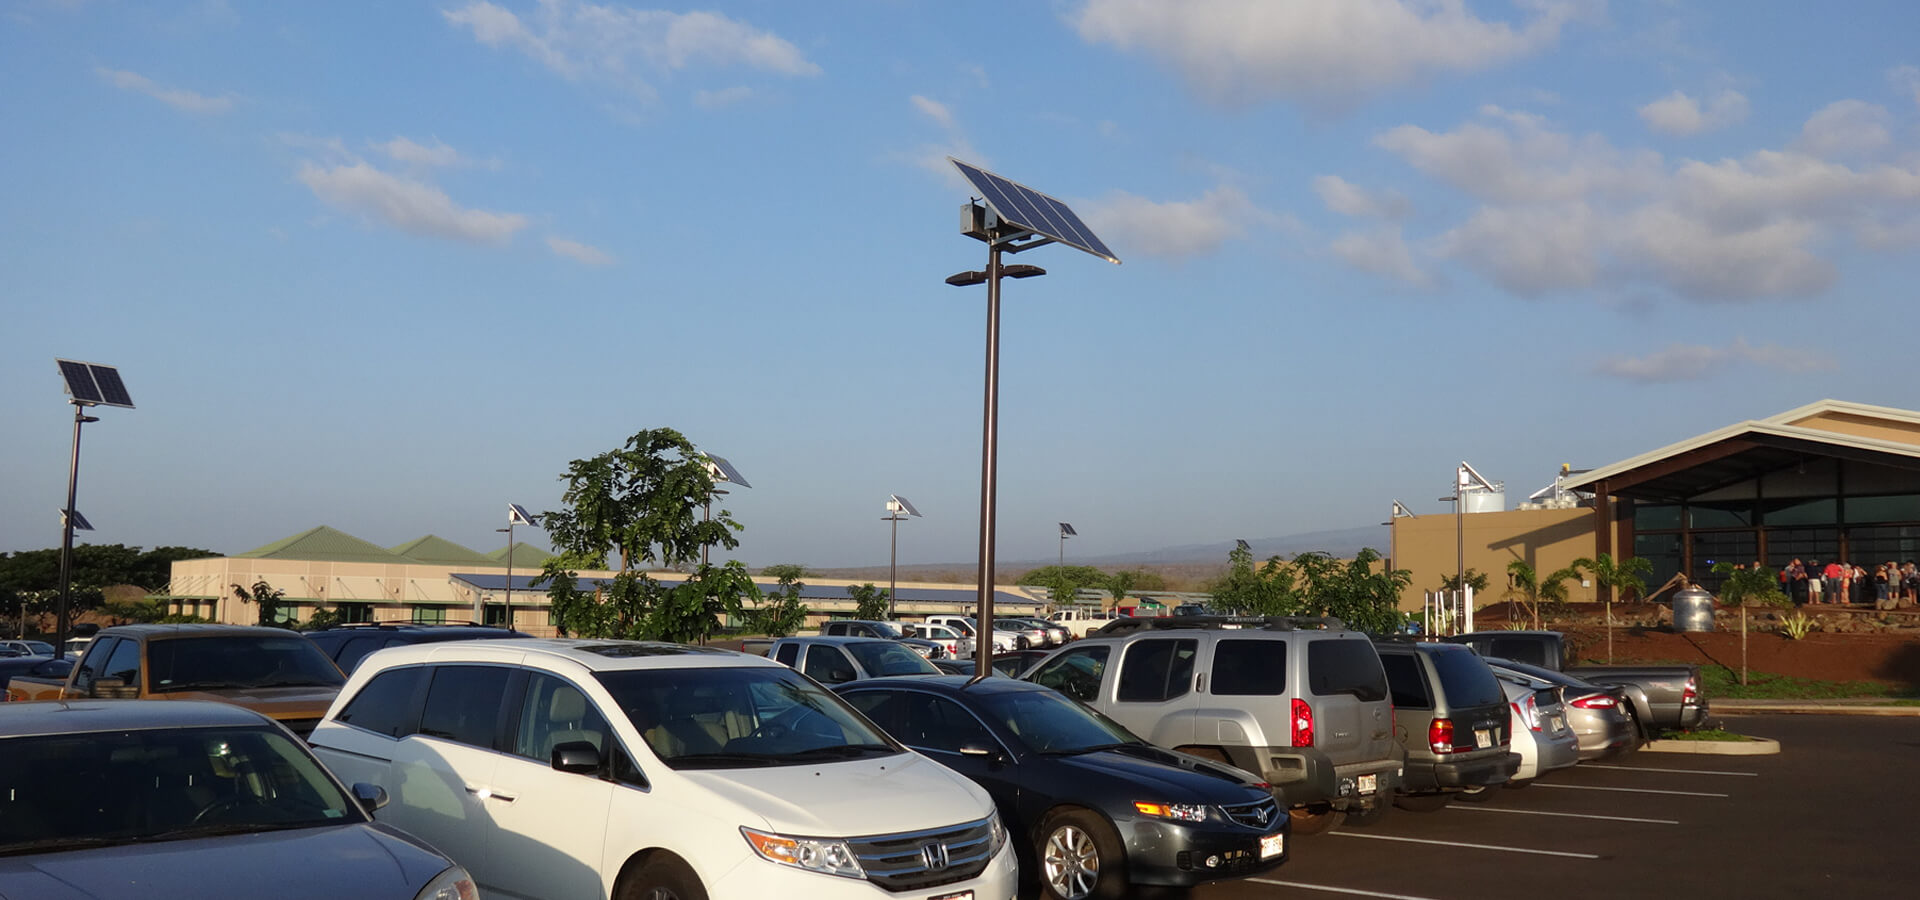 Commercial Solar LED Light System